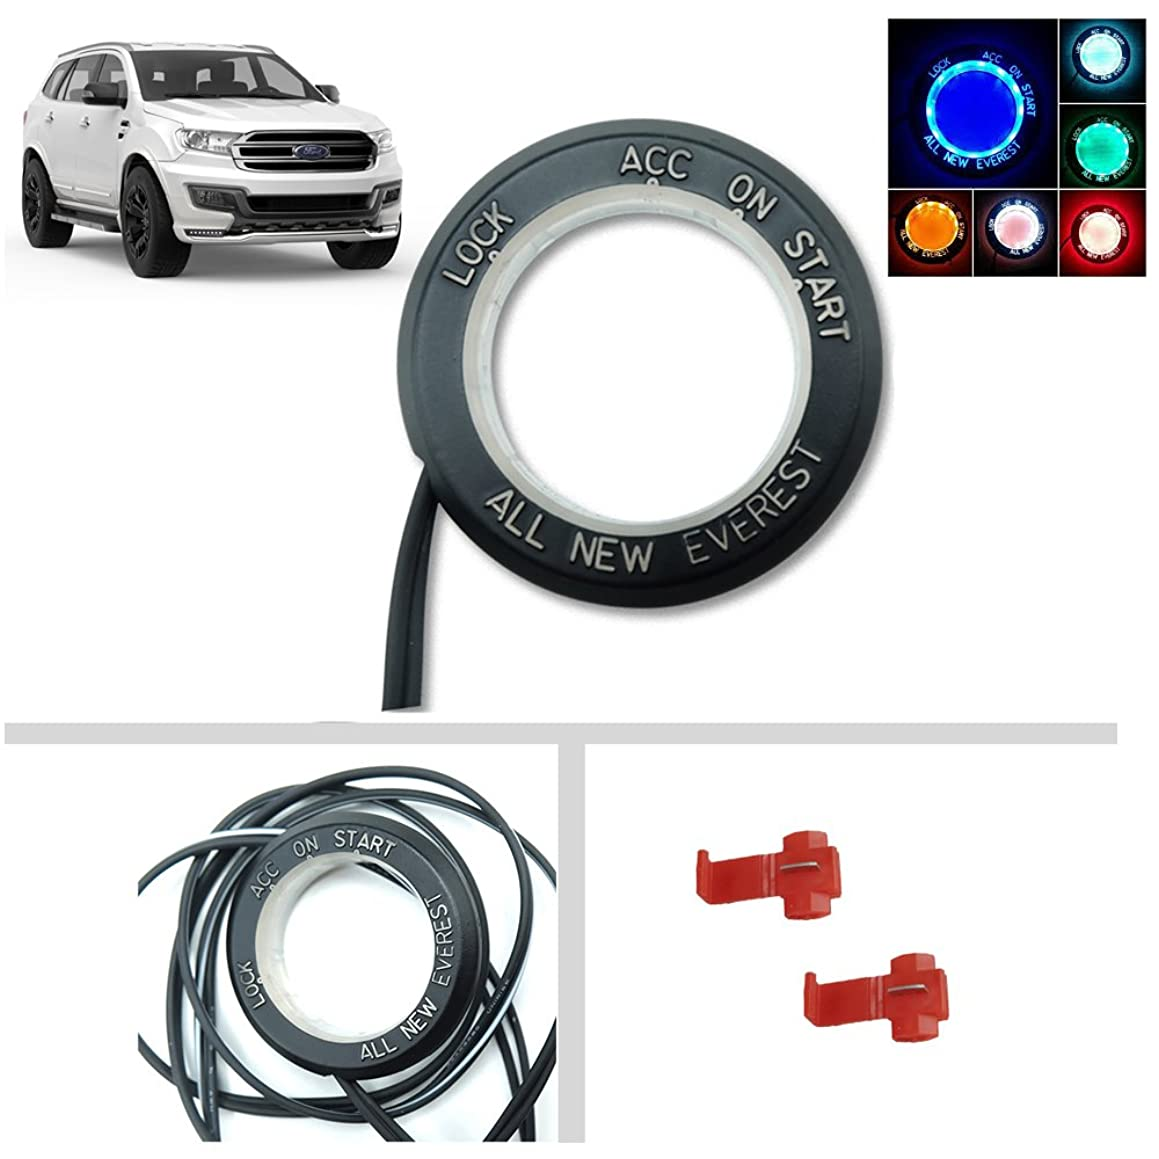 Powerwarauto Remote Start Key Hole LED Light Ring Cover Trim For Ford Everest Suv 2015 2016 2017 2018